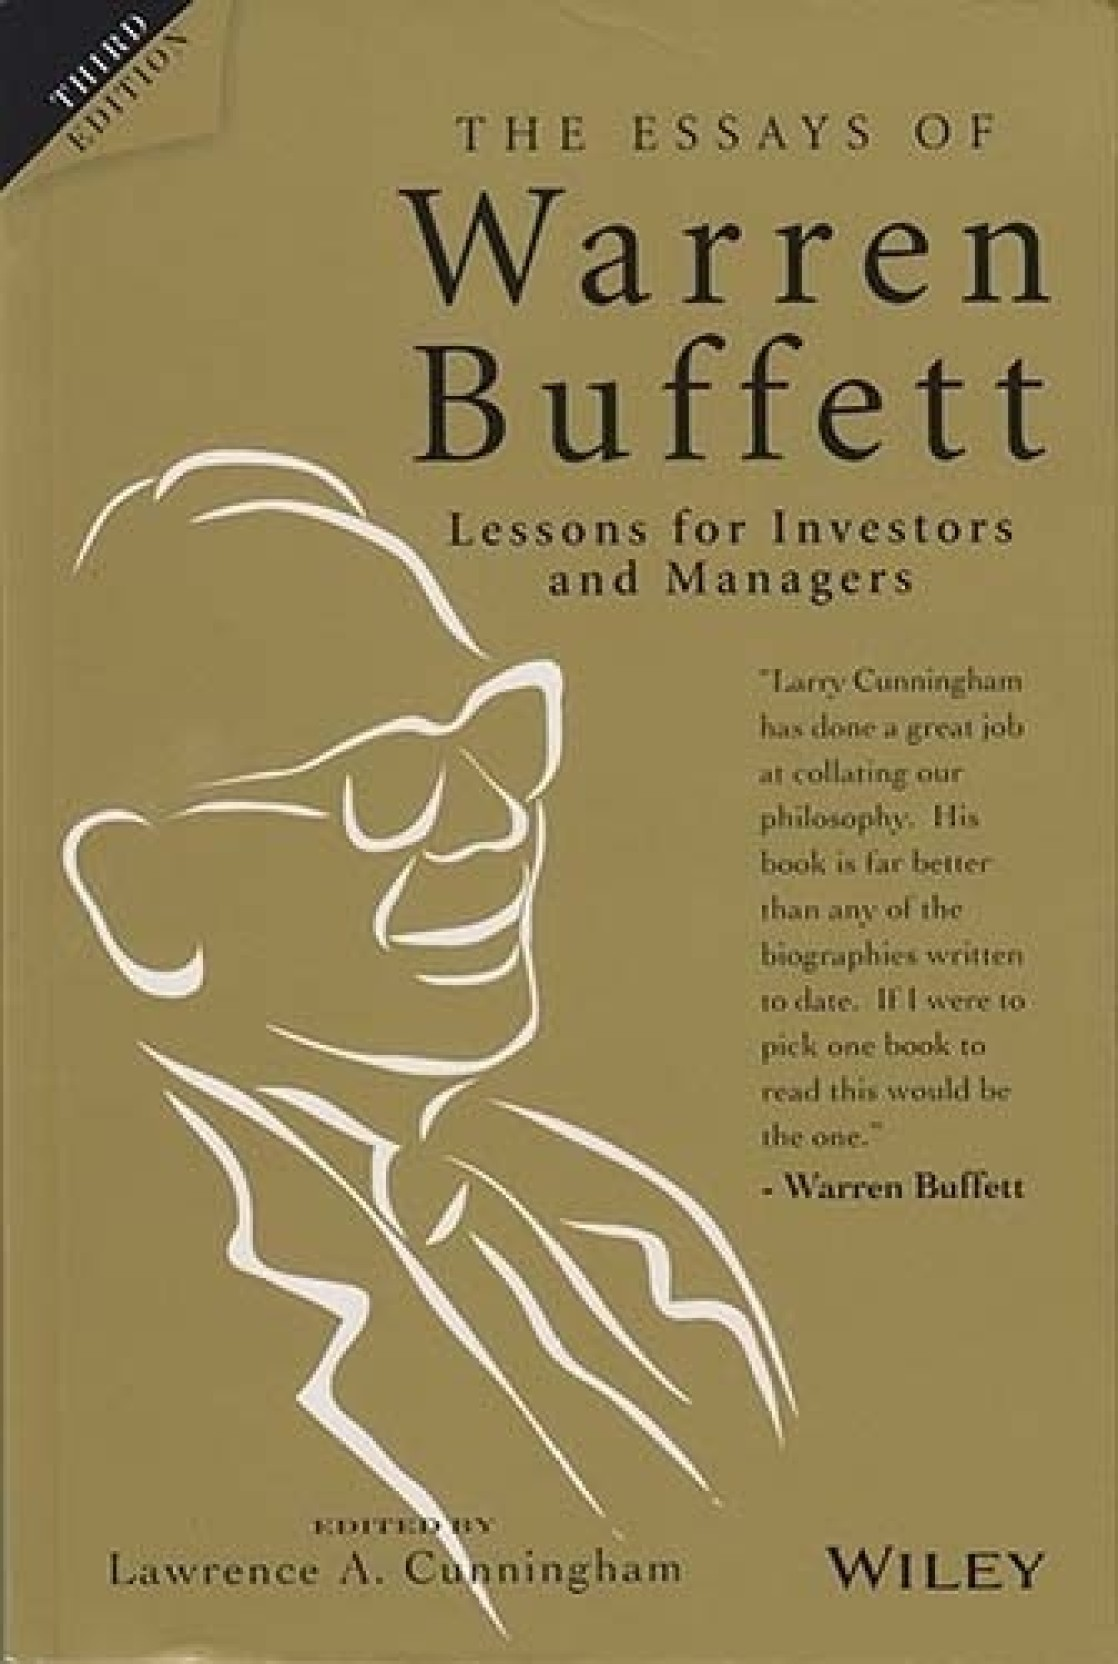 014 Essay Example The Essays Of Warren Buffett Lessons For Investors And Managers Original Striking 4th Edition Free Pdf Full